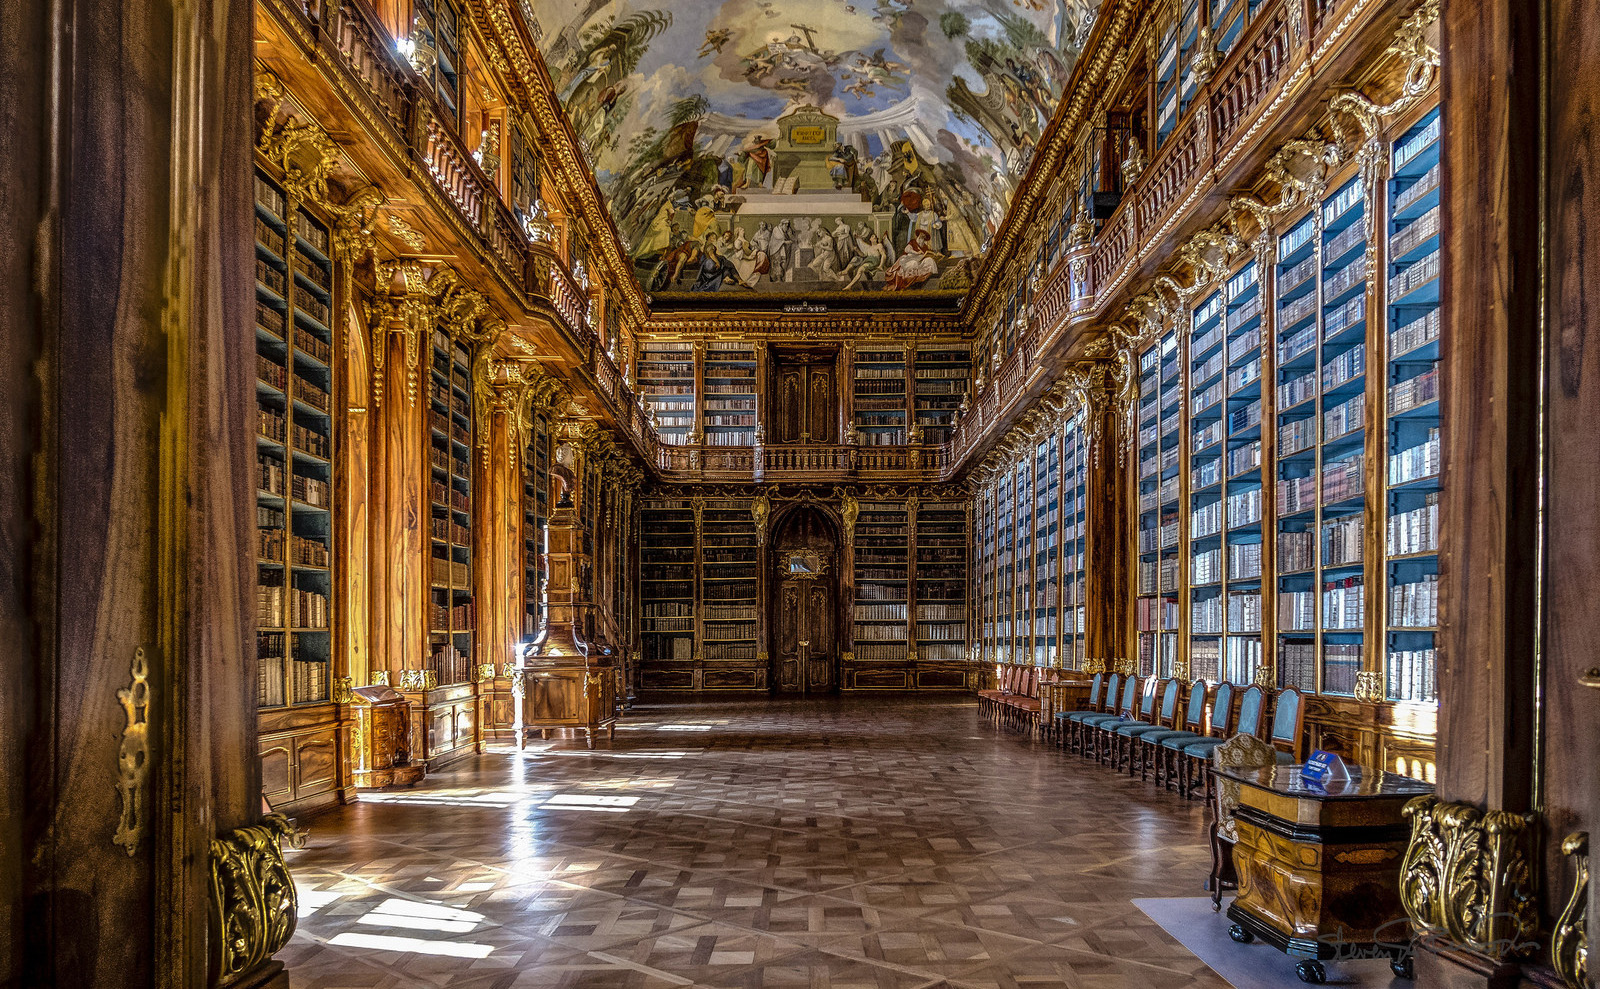 Strong Sense of Place: Prague's Stunning Strahov Monastery Library and Cabinet of Curiosities